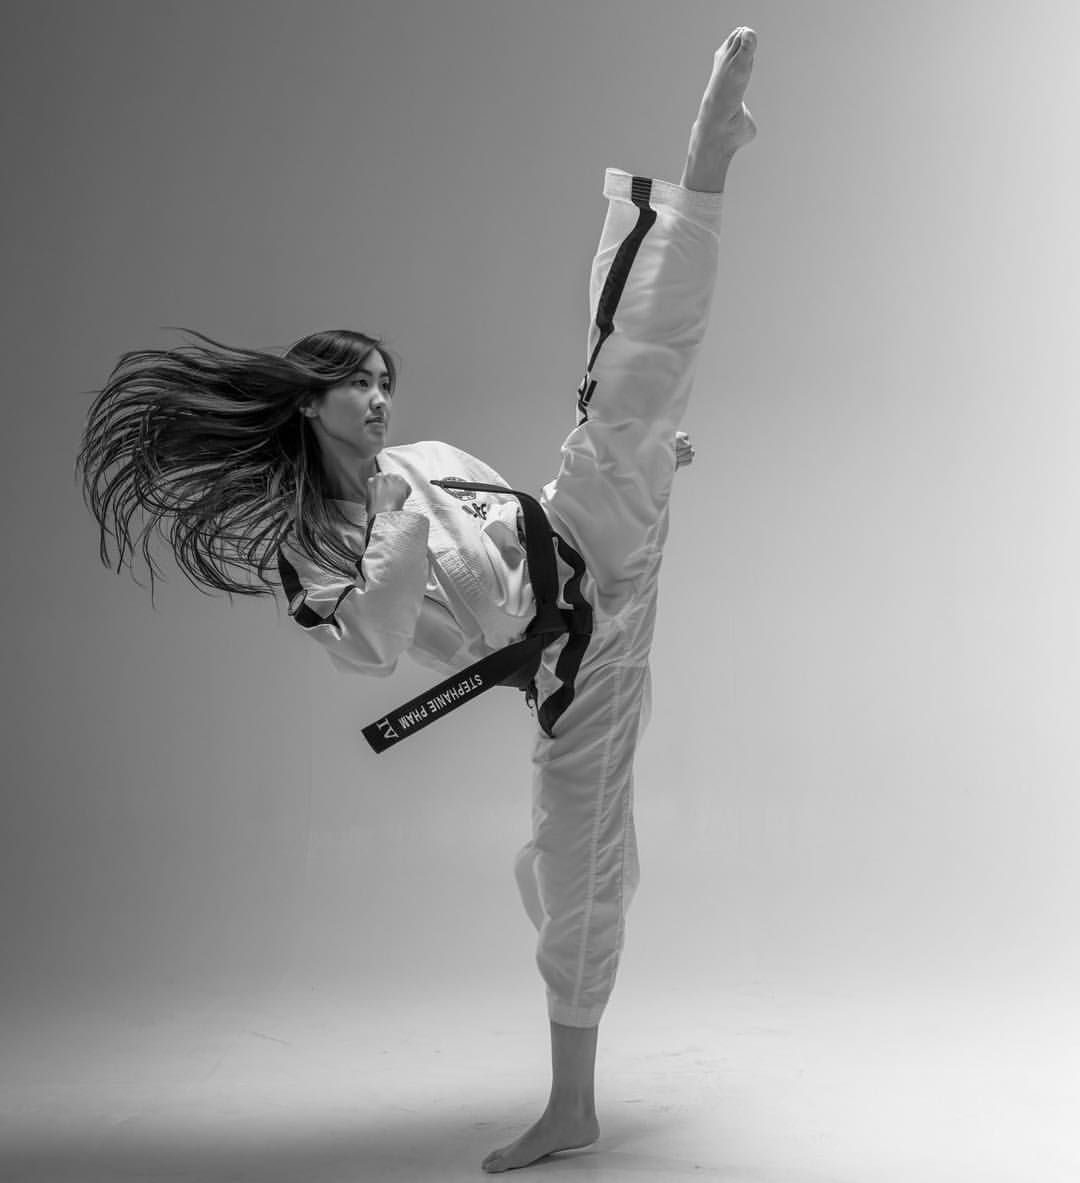 tae kwon go being performed by a woman